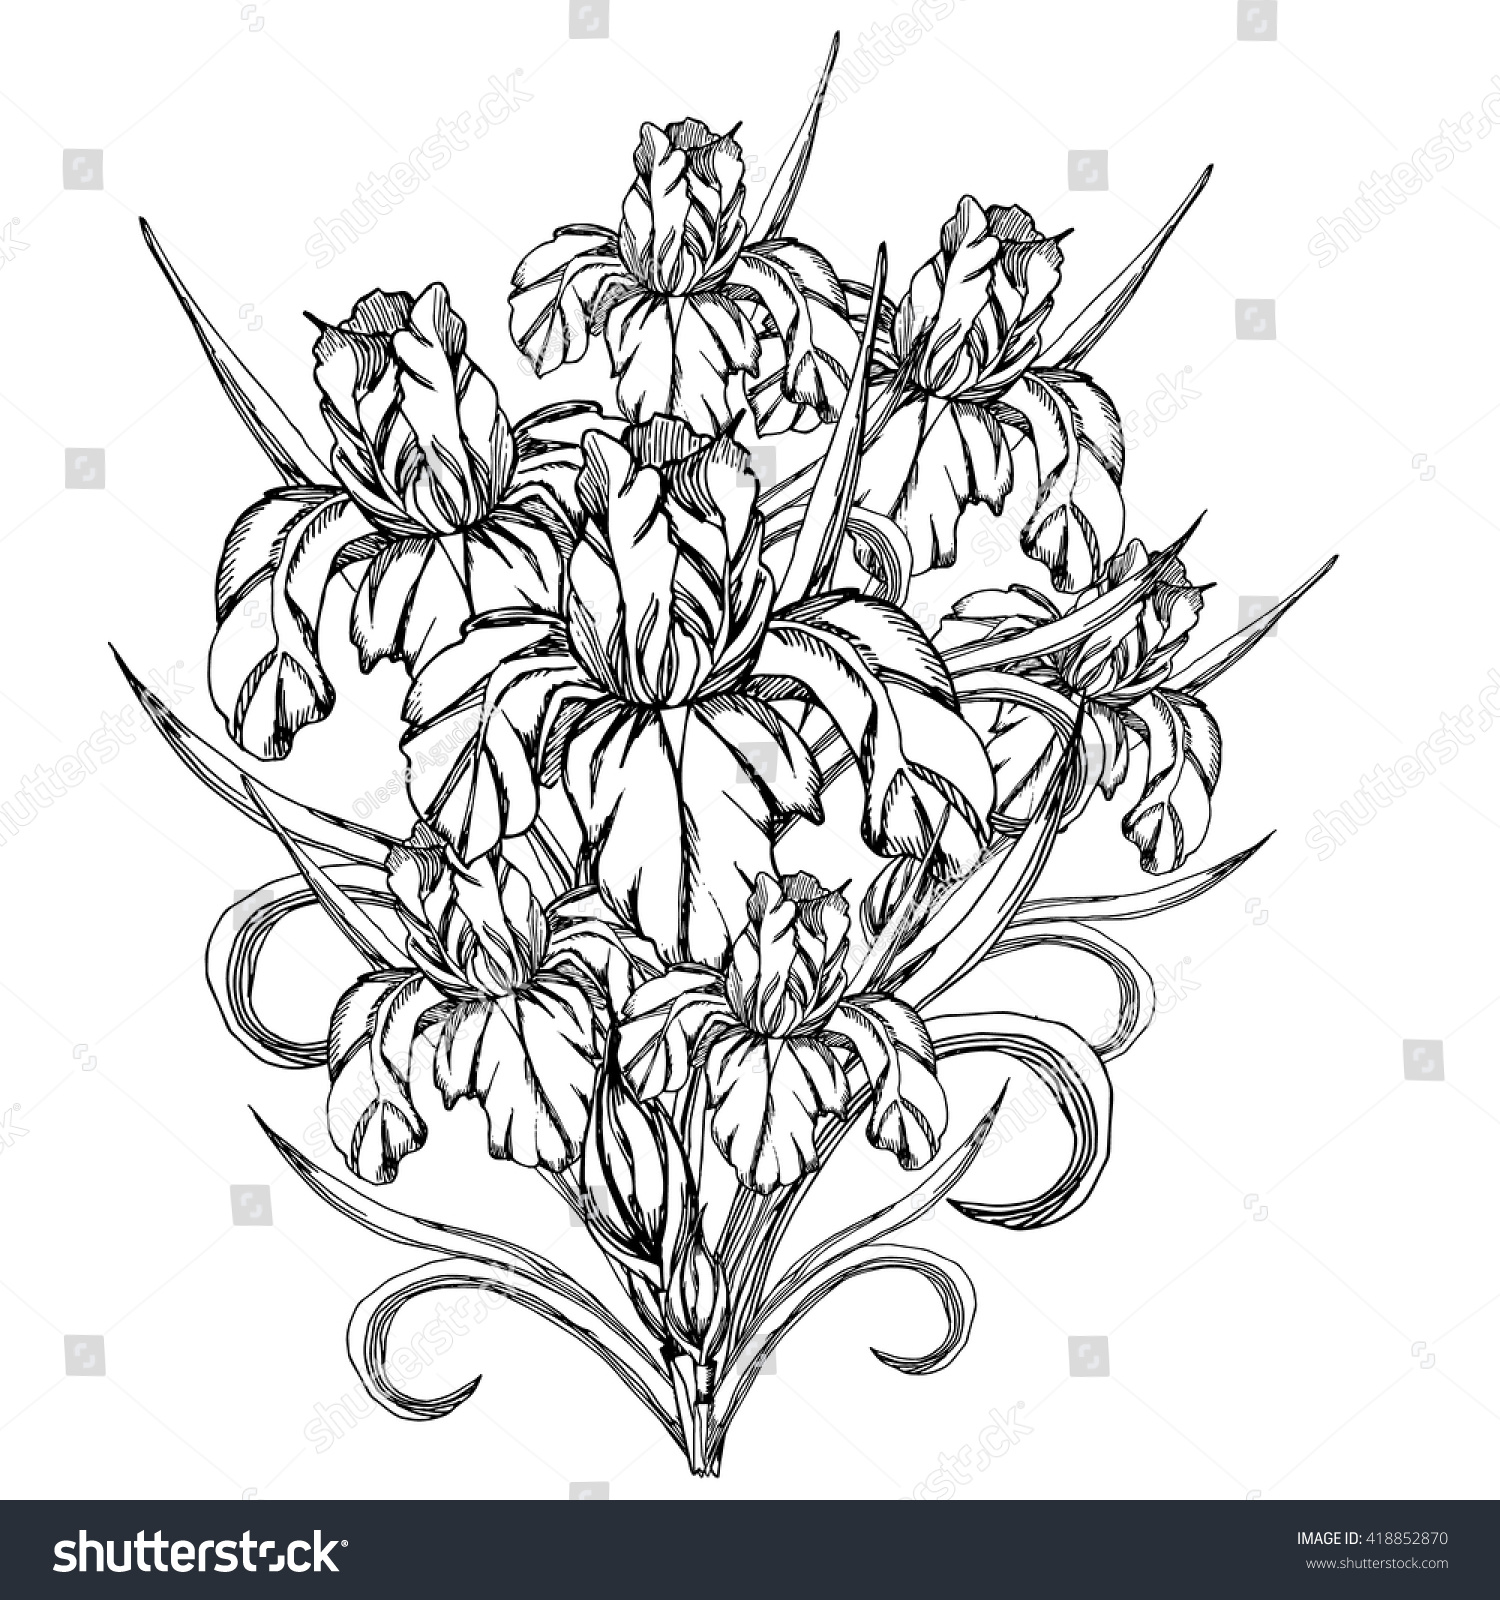 Sketch flower vector decorative trace iris flowers template stock sketch flowerctor decorative trace of iris flowerstemplate for coloring pages for adults izmirmasajfo